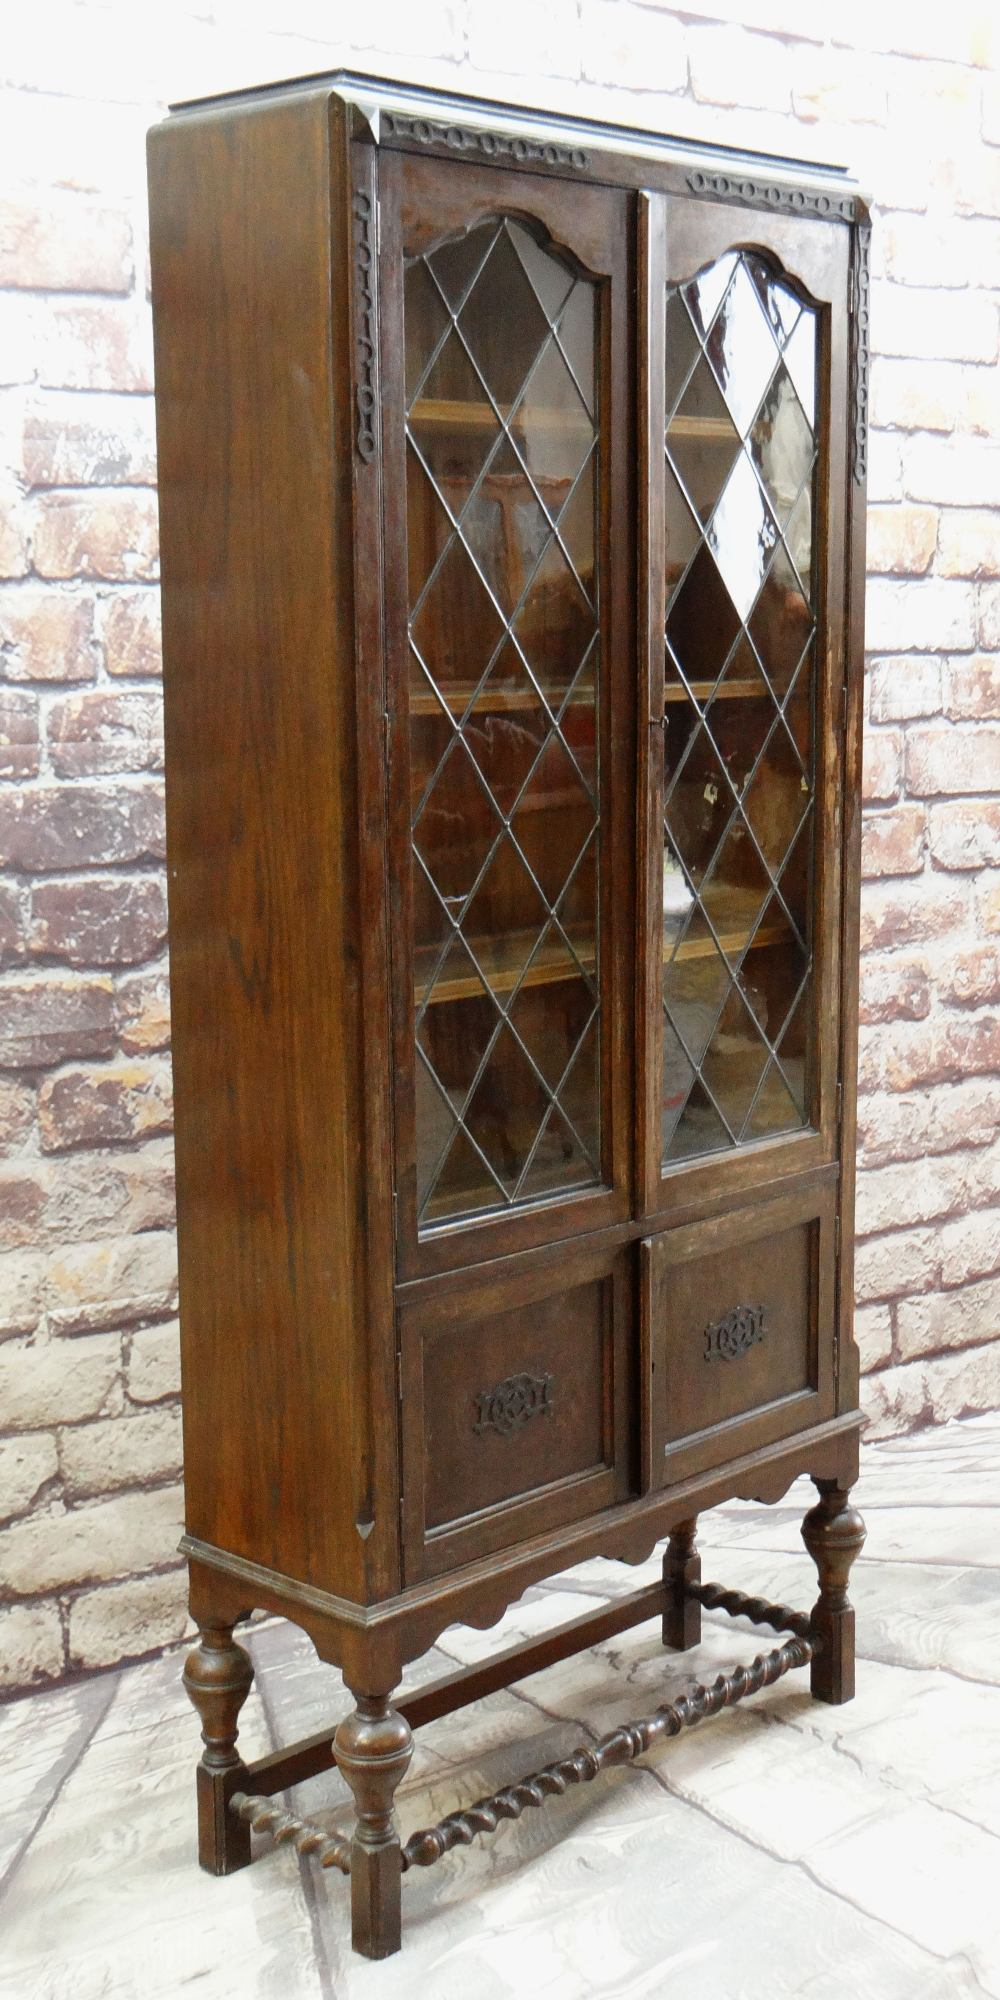 EARLY 20TH CENTURY CARVED OAK & LEADED GLASS BOOKCASE with applied mouldings, turned cup and cover - Image 2 of 2